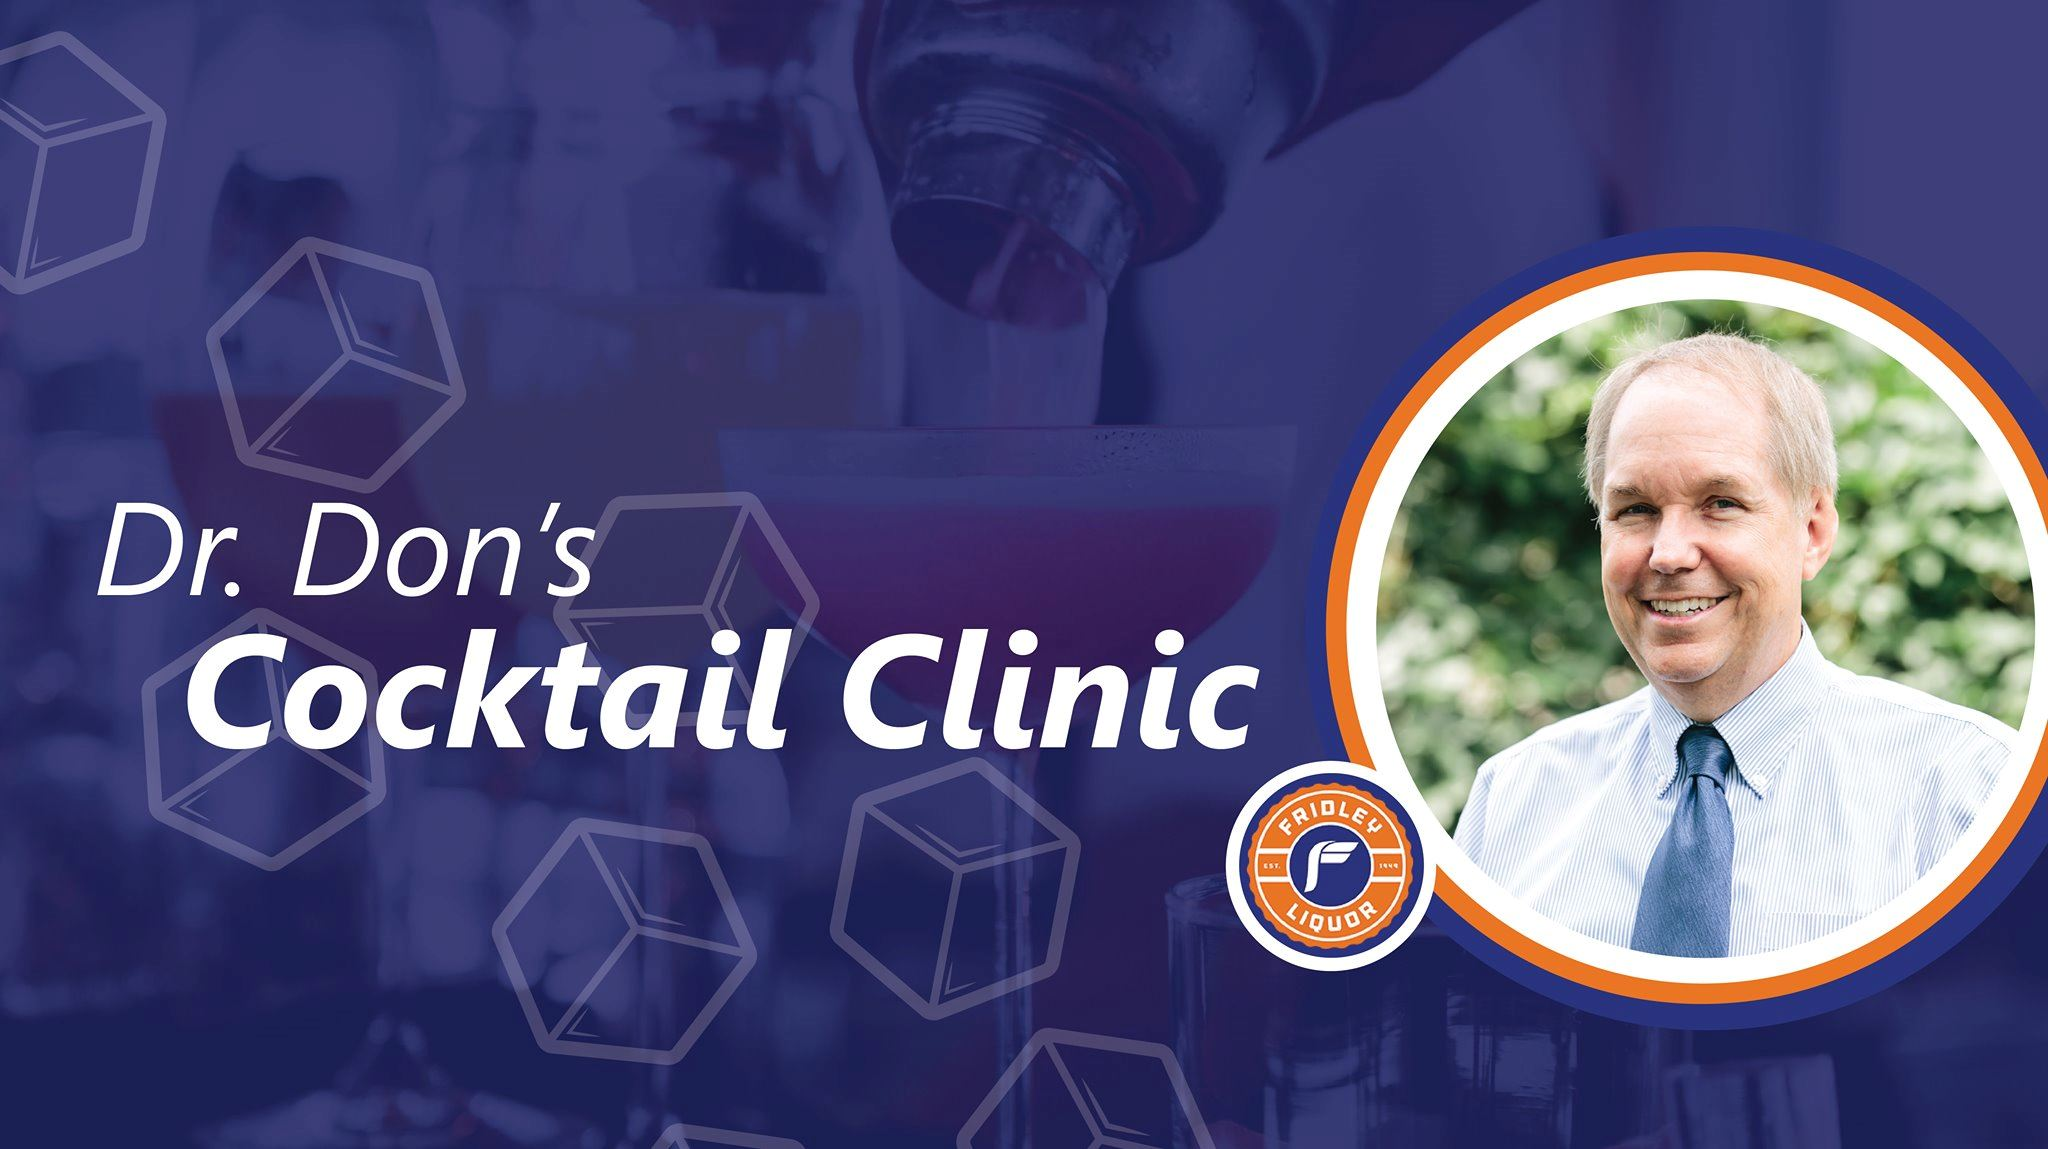 Dr. Don Cocktail Clinic graphic